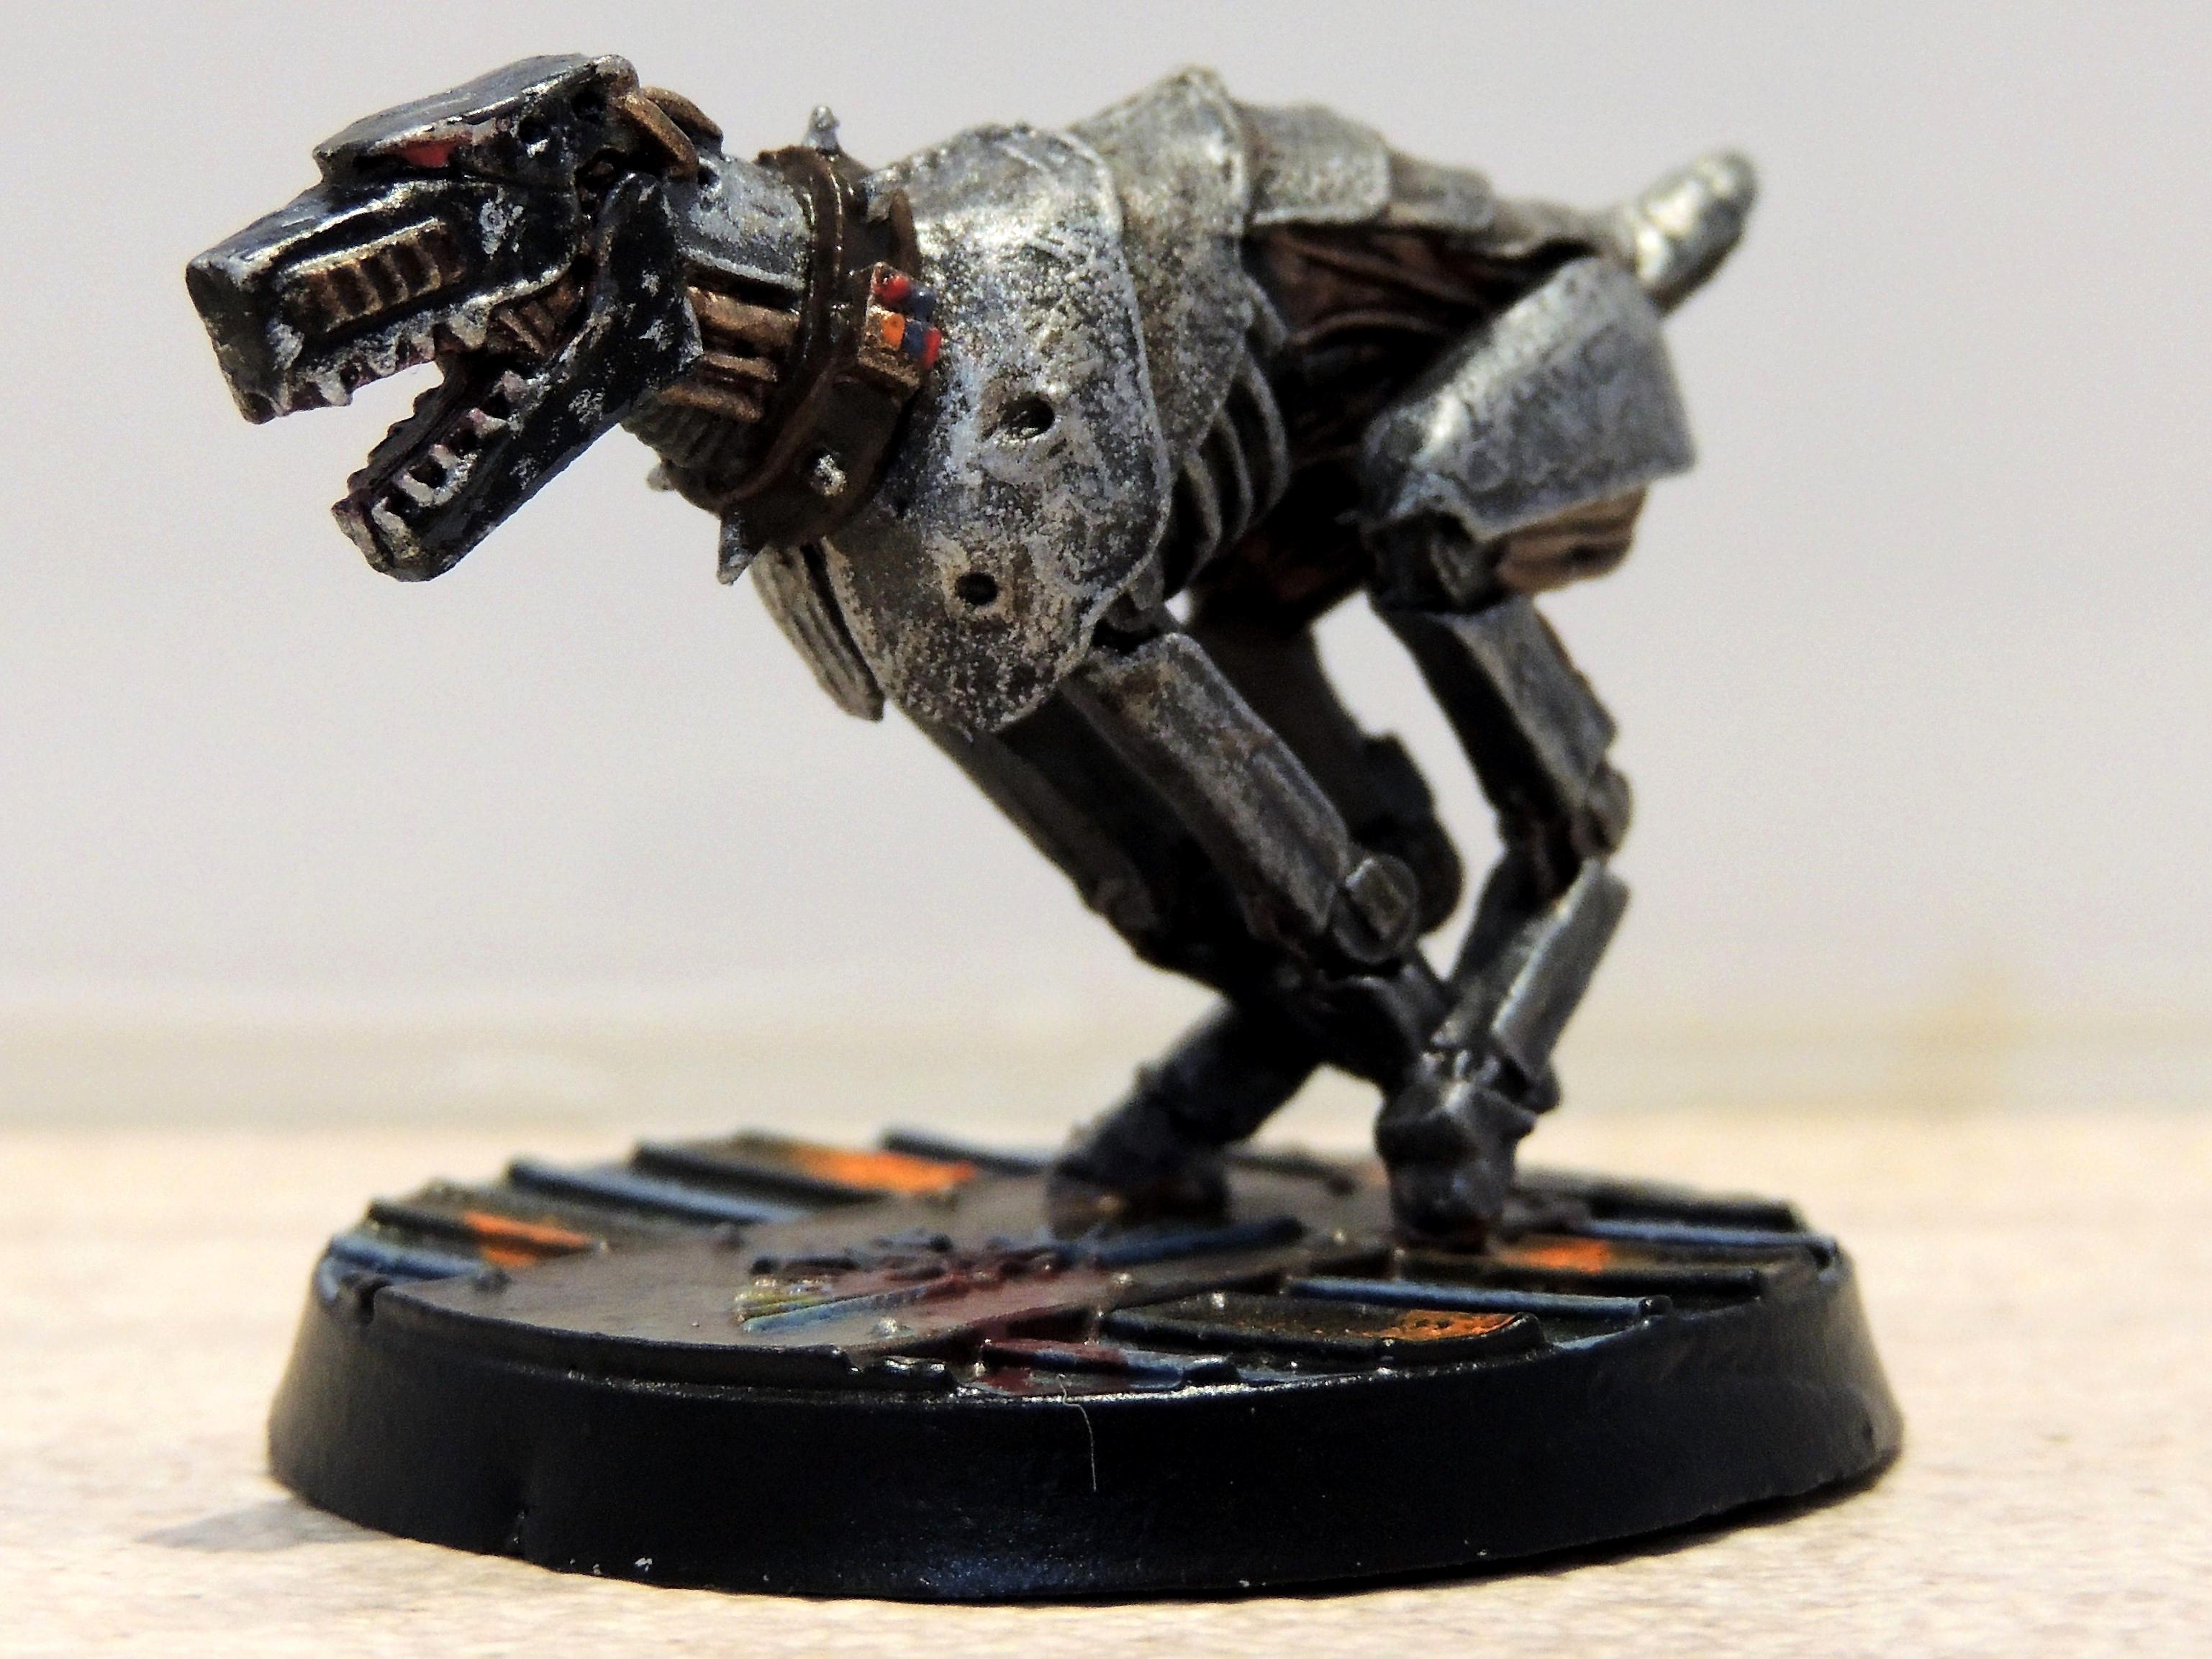 54mm, Adeptus Arbites, Cyber-mastiff, Enforcer, Inquisitor